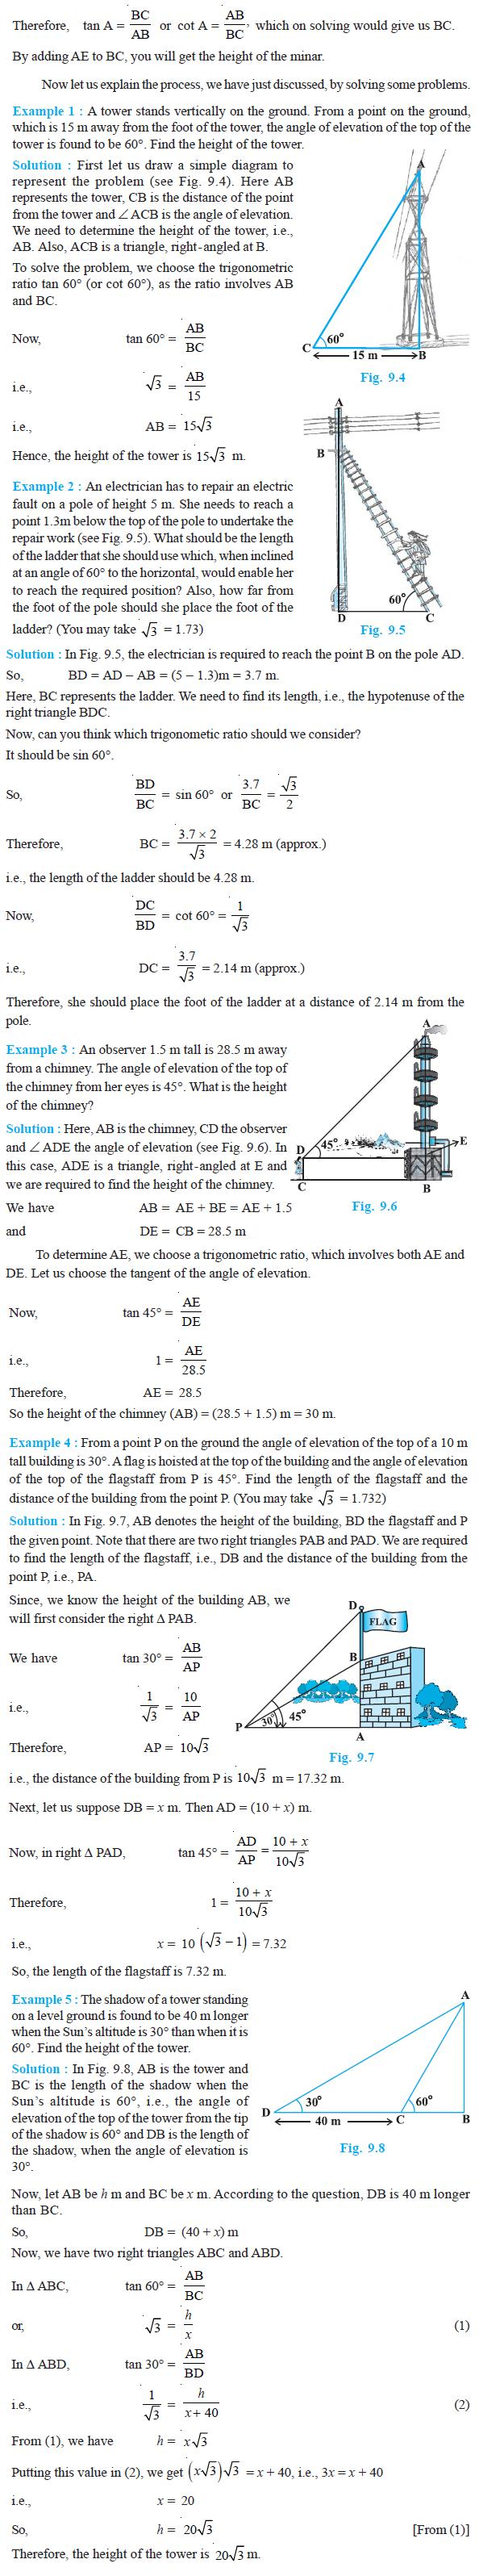 NCERT Class X Maths: Chapter 9 - Some Applications of Trigonometry